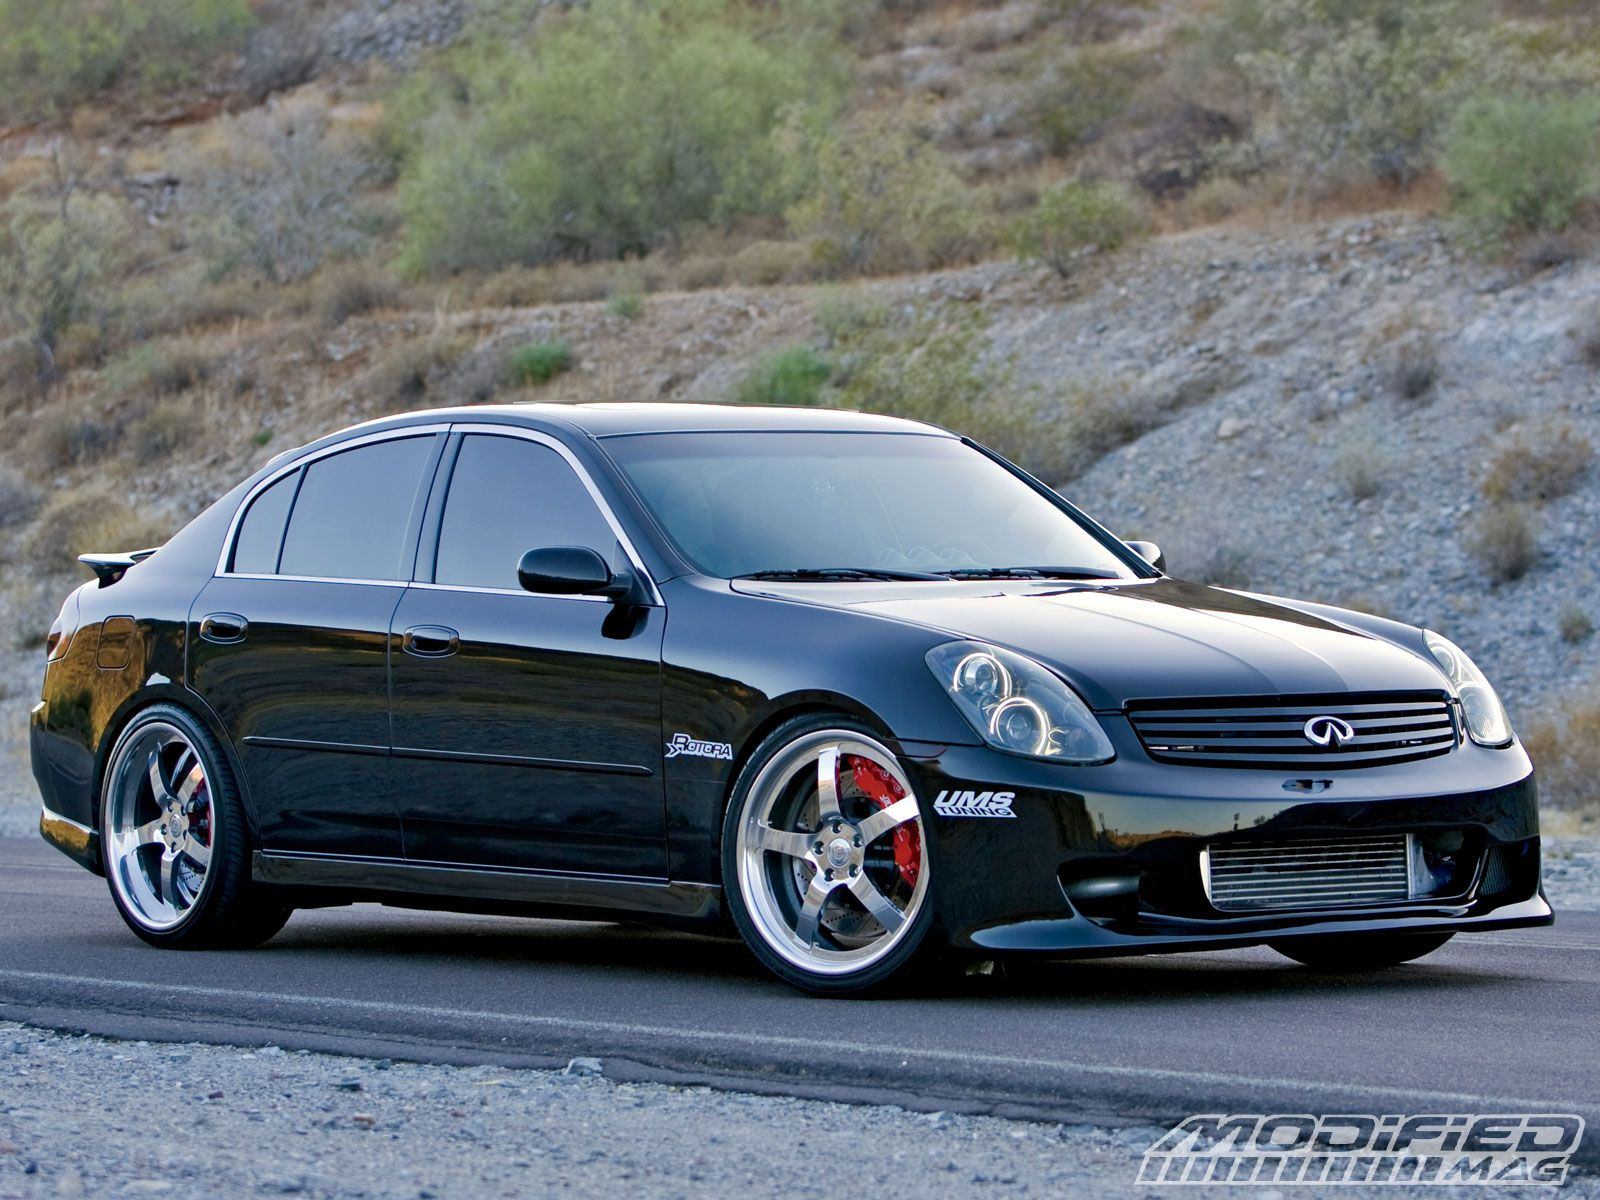 Infiniti S G35 Sedan Goal Behind Their Original Q45 Was For It To Be A